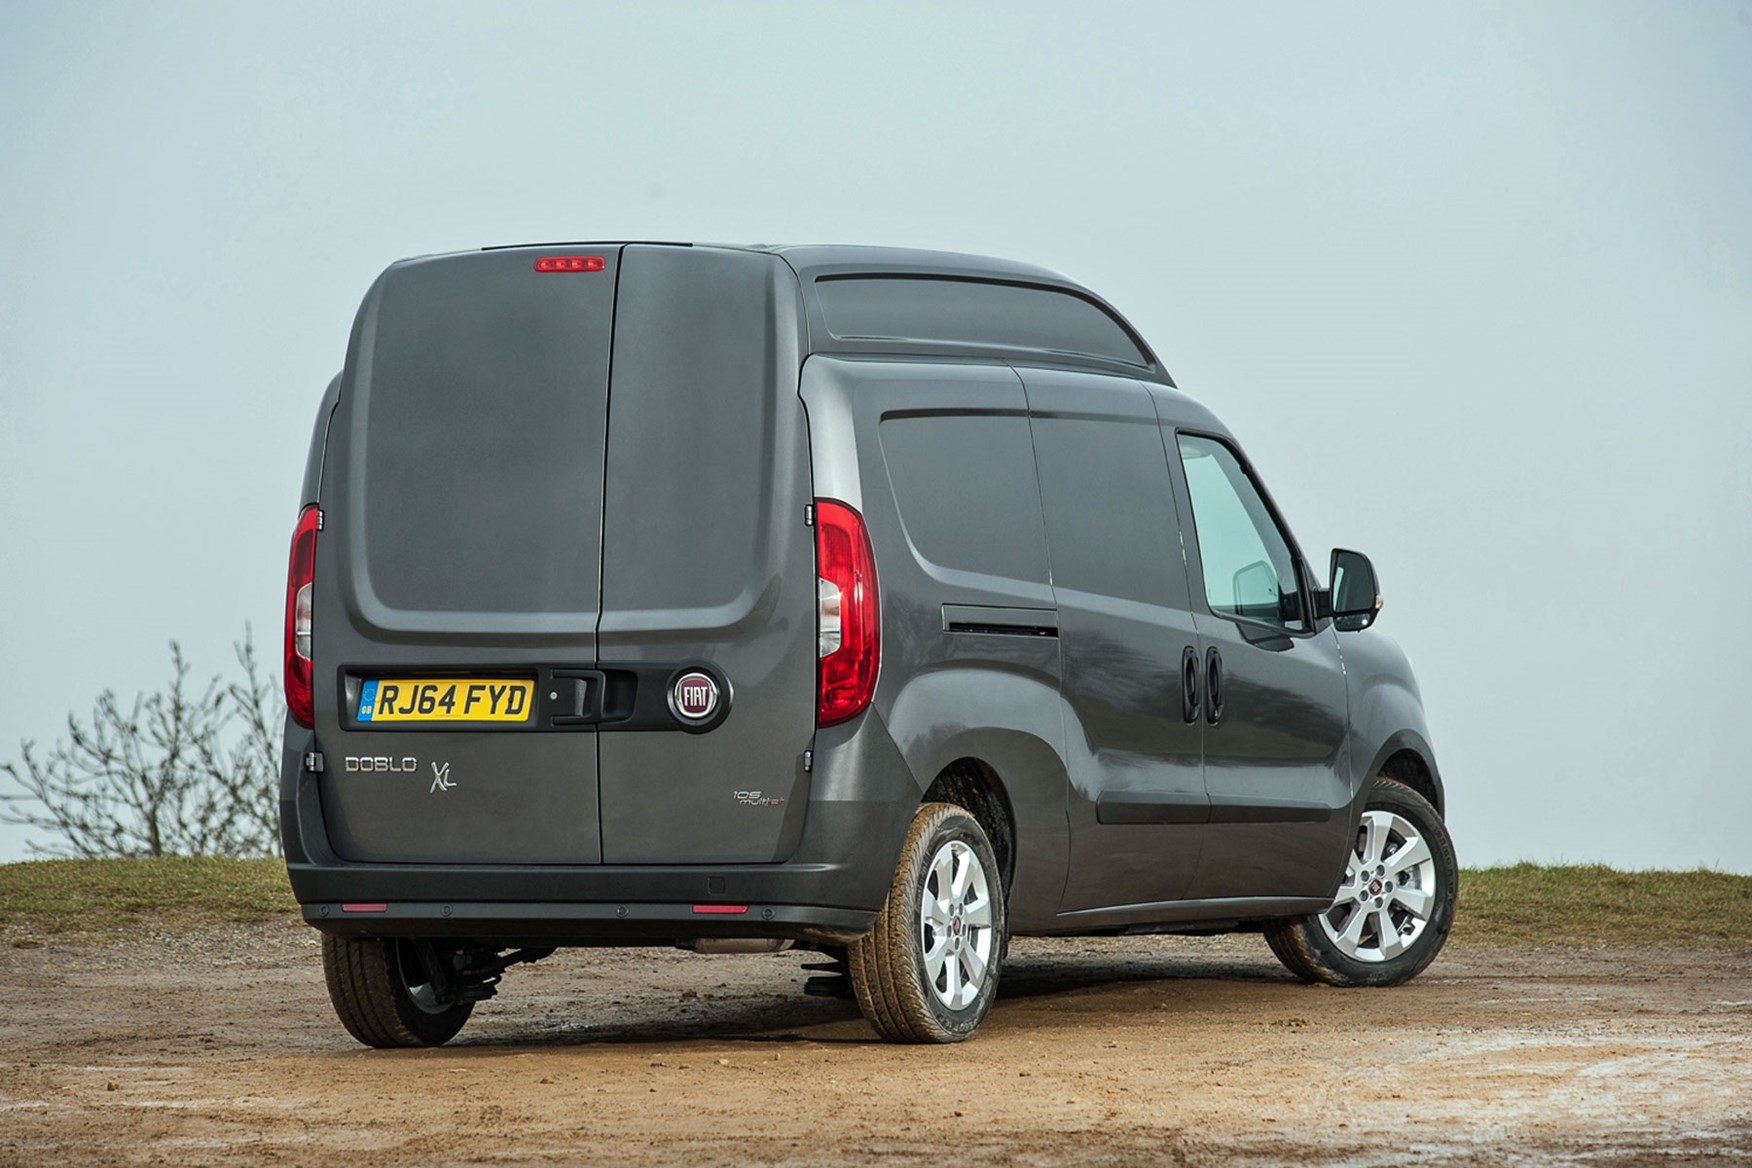 Fiat Doblo Maxi XL review - rear view, grey, 2014